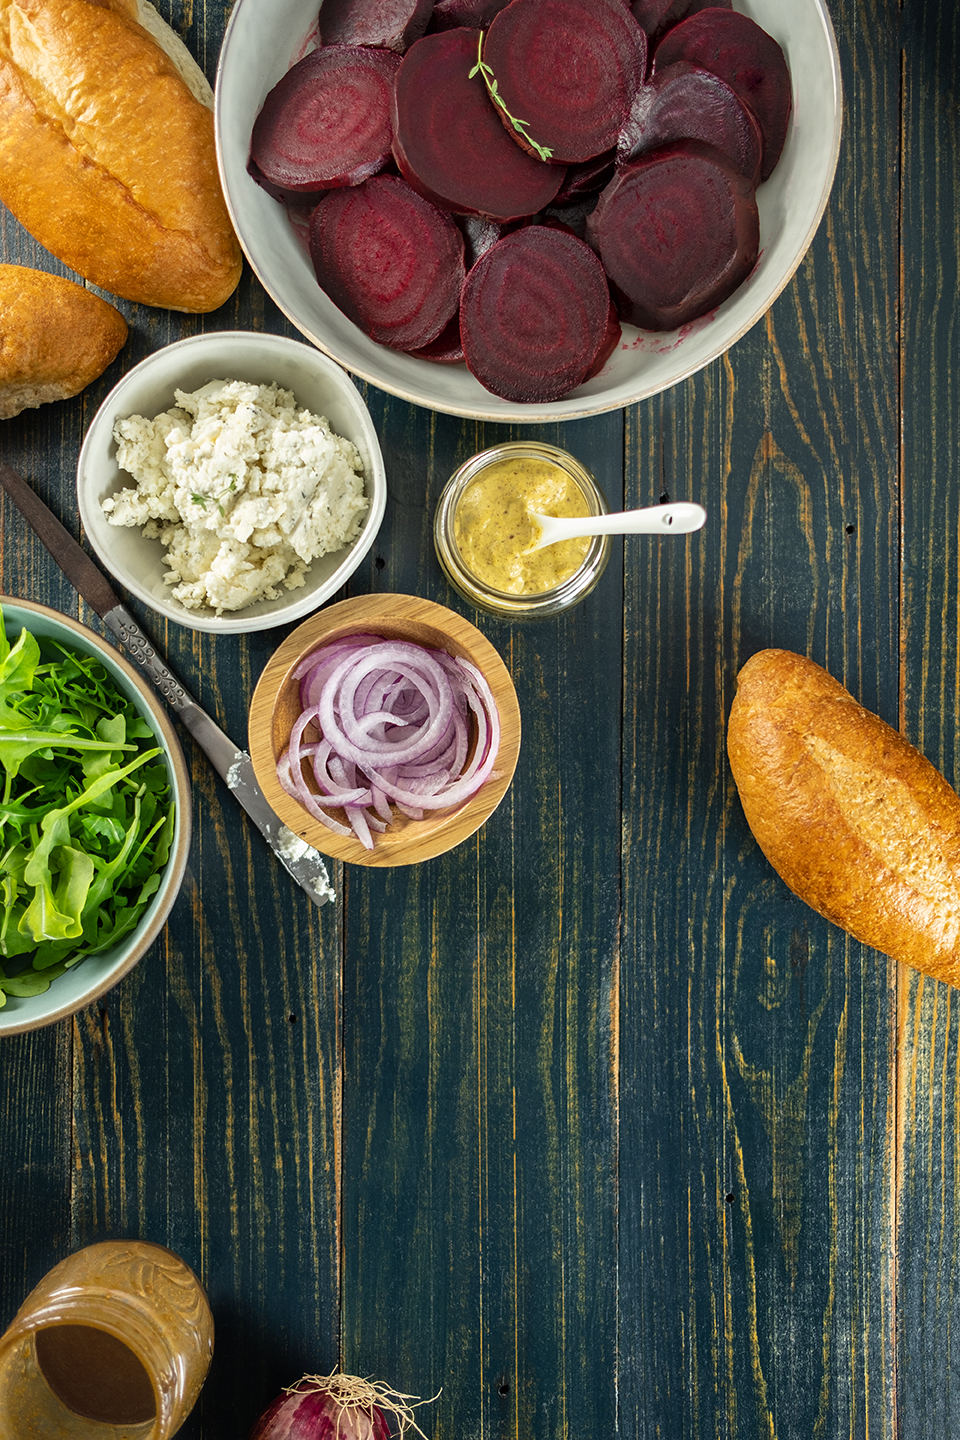 Roasted beets, honey goat cheese spread, onions, mustard, arugula and rolls on a rustic blue background.